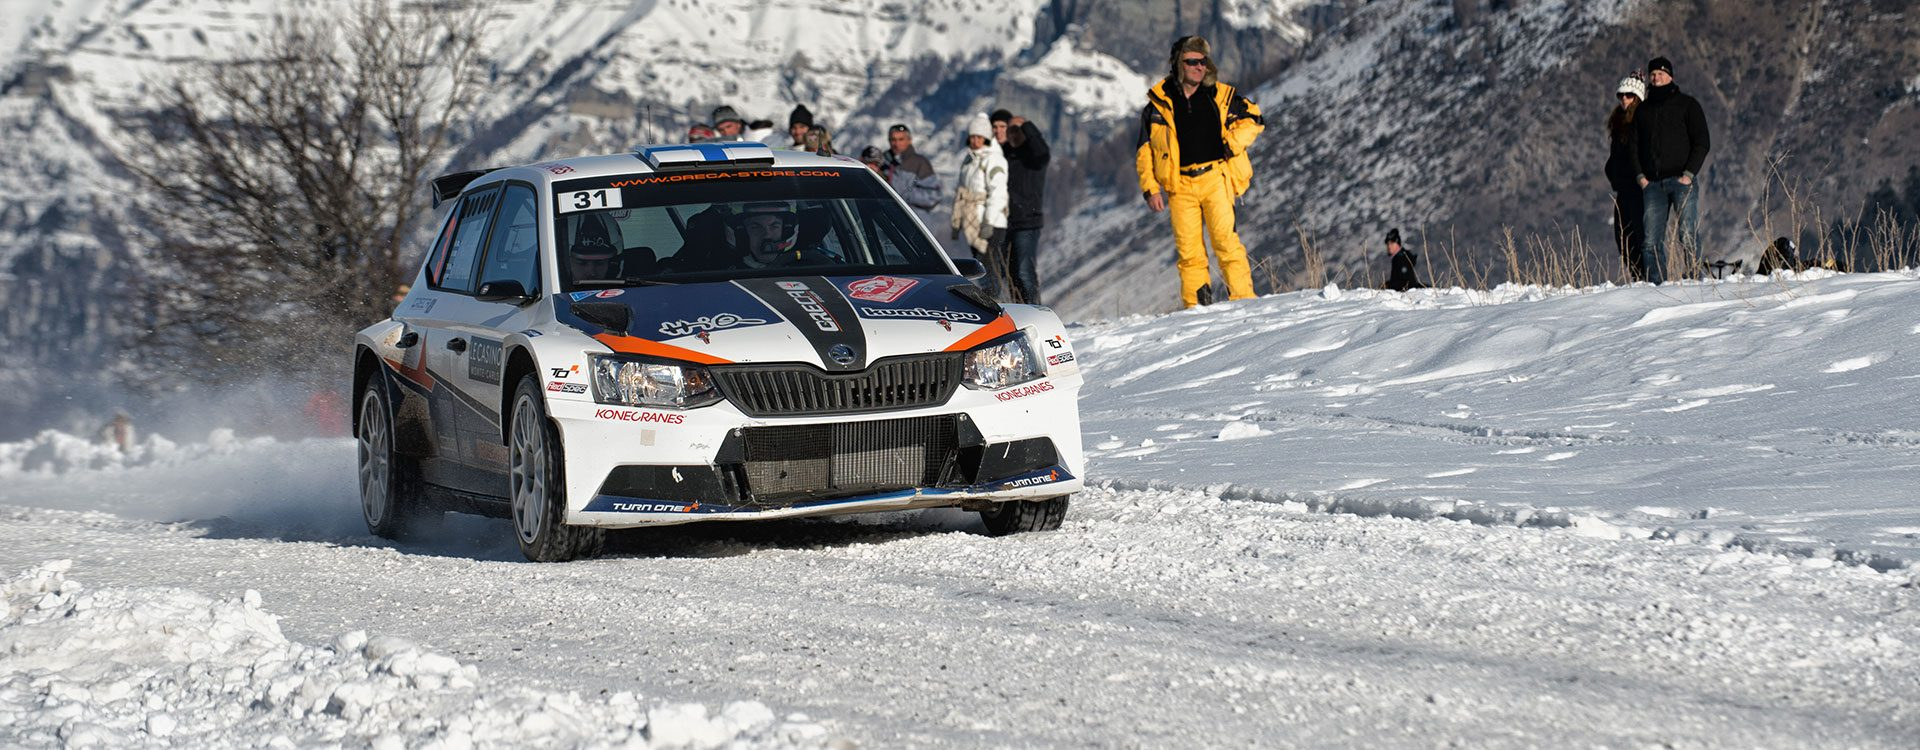 WRC Monte Carlo: Modified but still extremely demanding